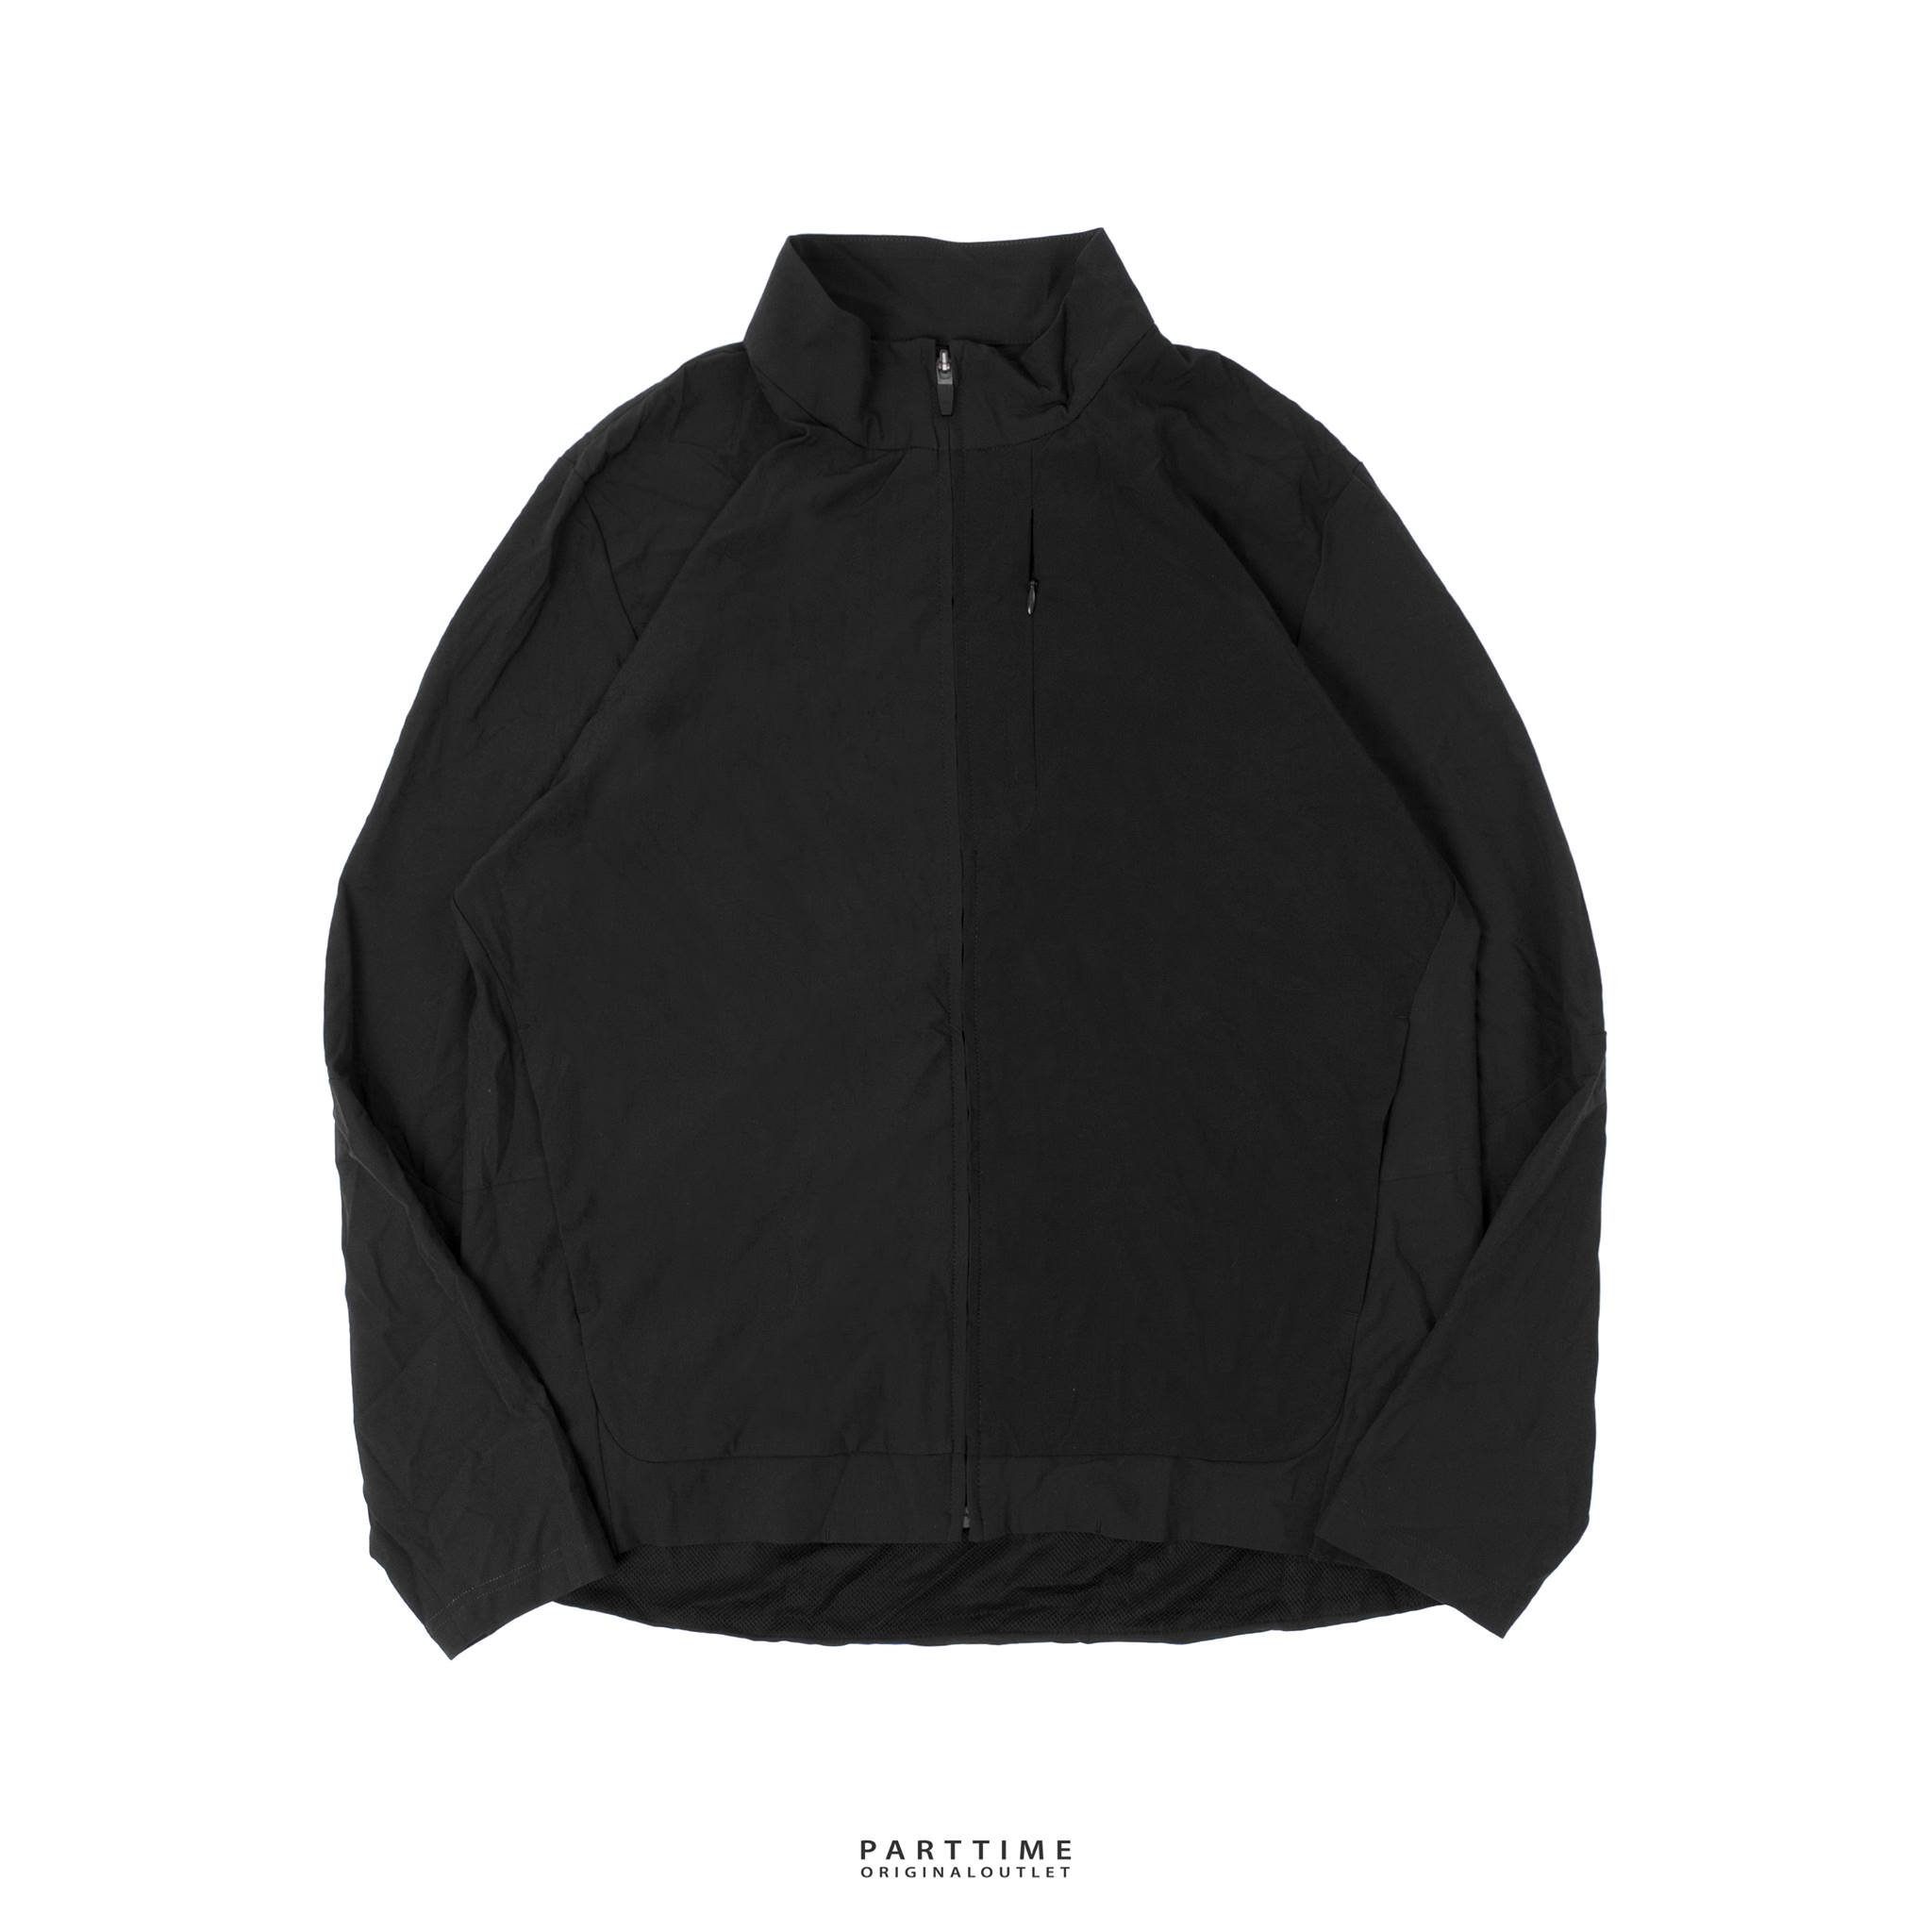 GU Windbreaker - Black